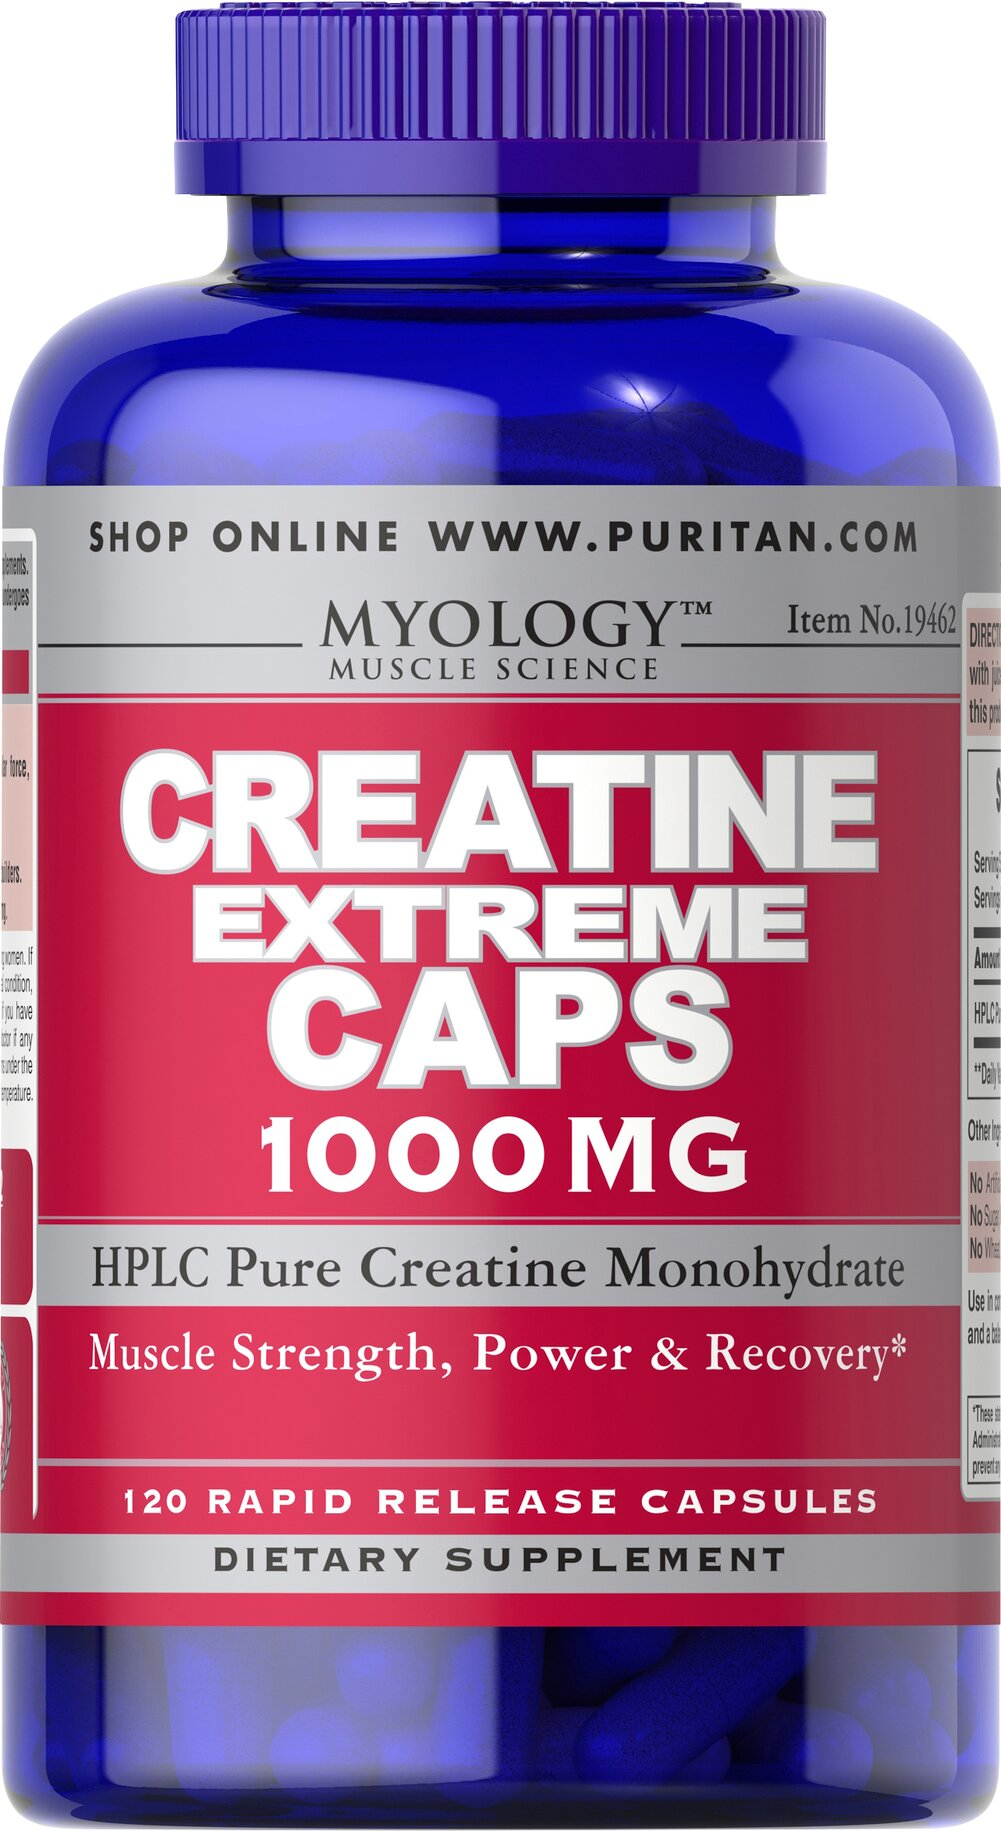 Creatine Extreme 1000 mg <p>Enhances the ability of muscles to produce higher muscular force, especially during short bouts of maximal exercise.**</p><p>Helps promote athletic performance**</p><p>Excellent supplemental choice for athletes and hardcore bodybuilders.</p><p>Each capsule contains HPLC Pure Creatine Monohydrate 1000 mg.</p> 120 Capsules 1000 mg $18.99